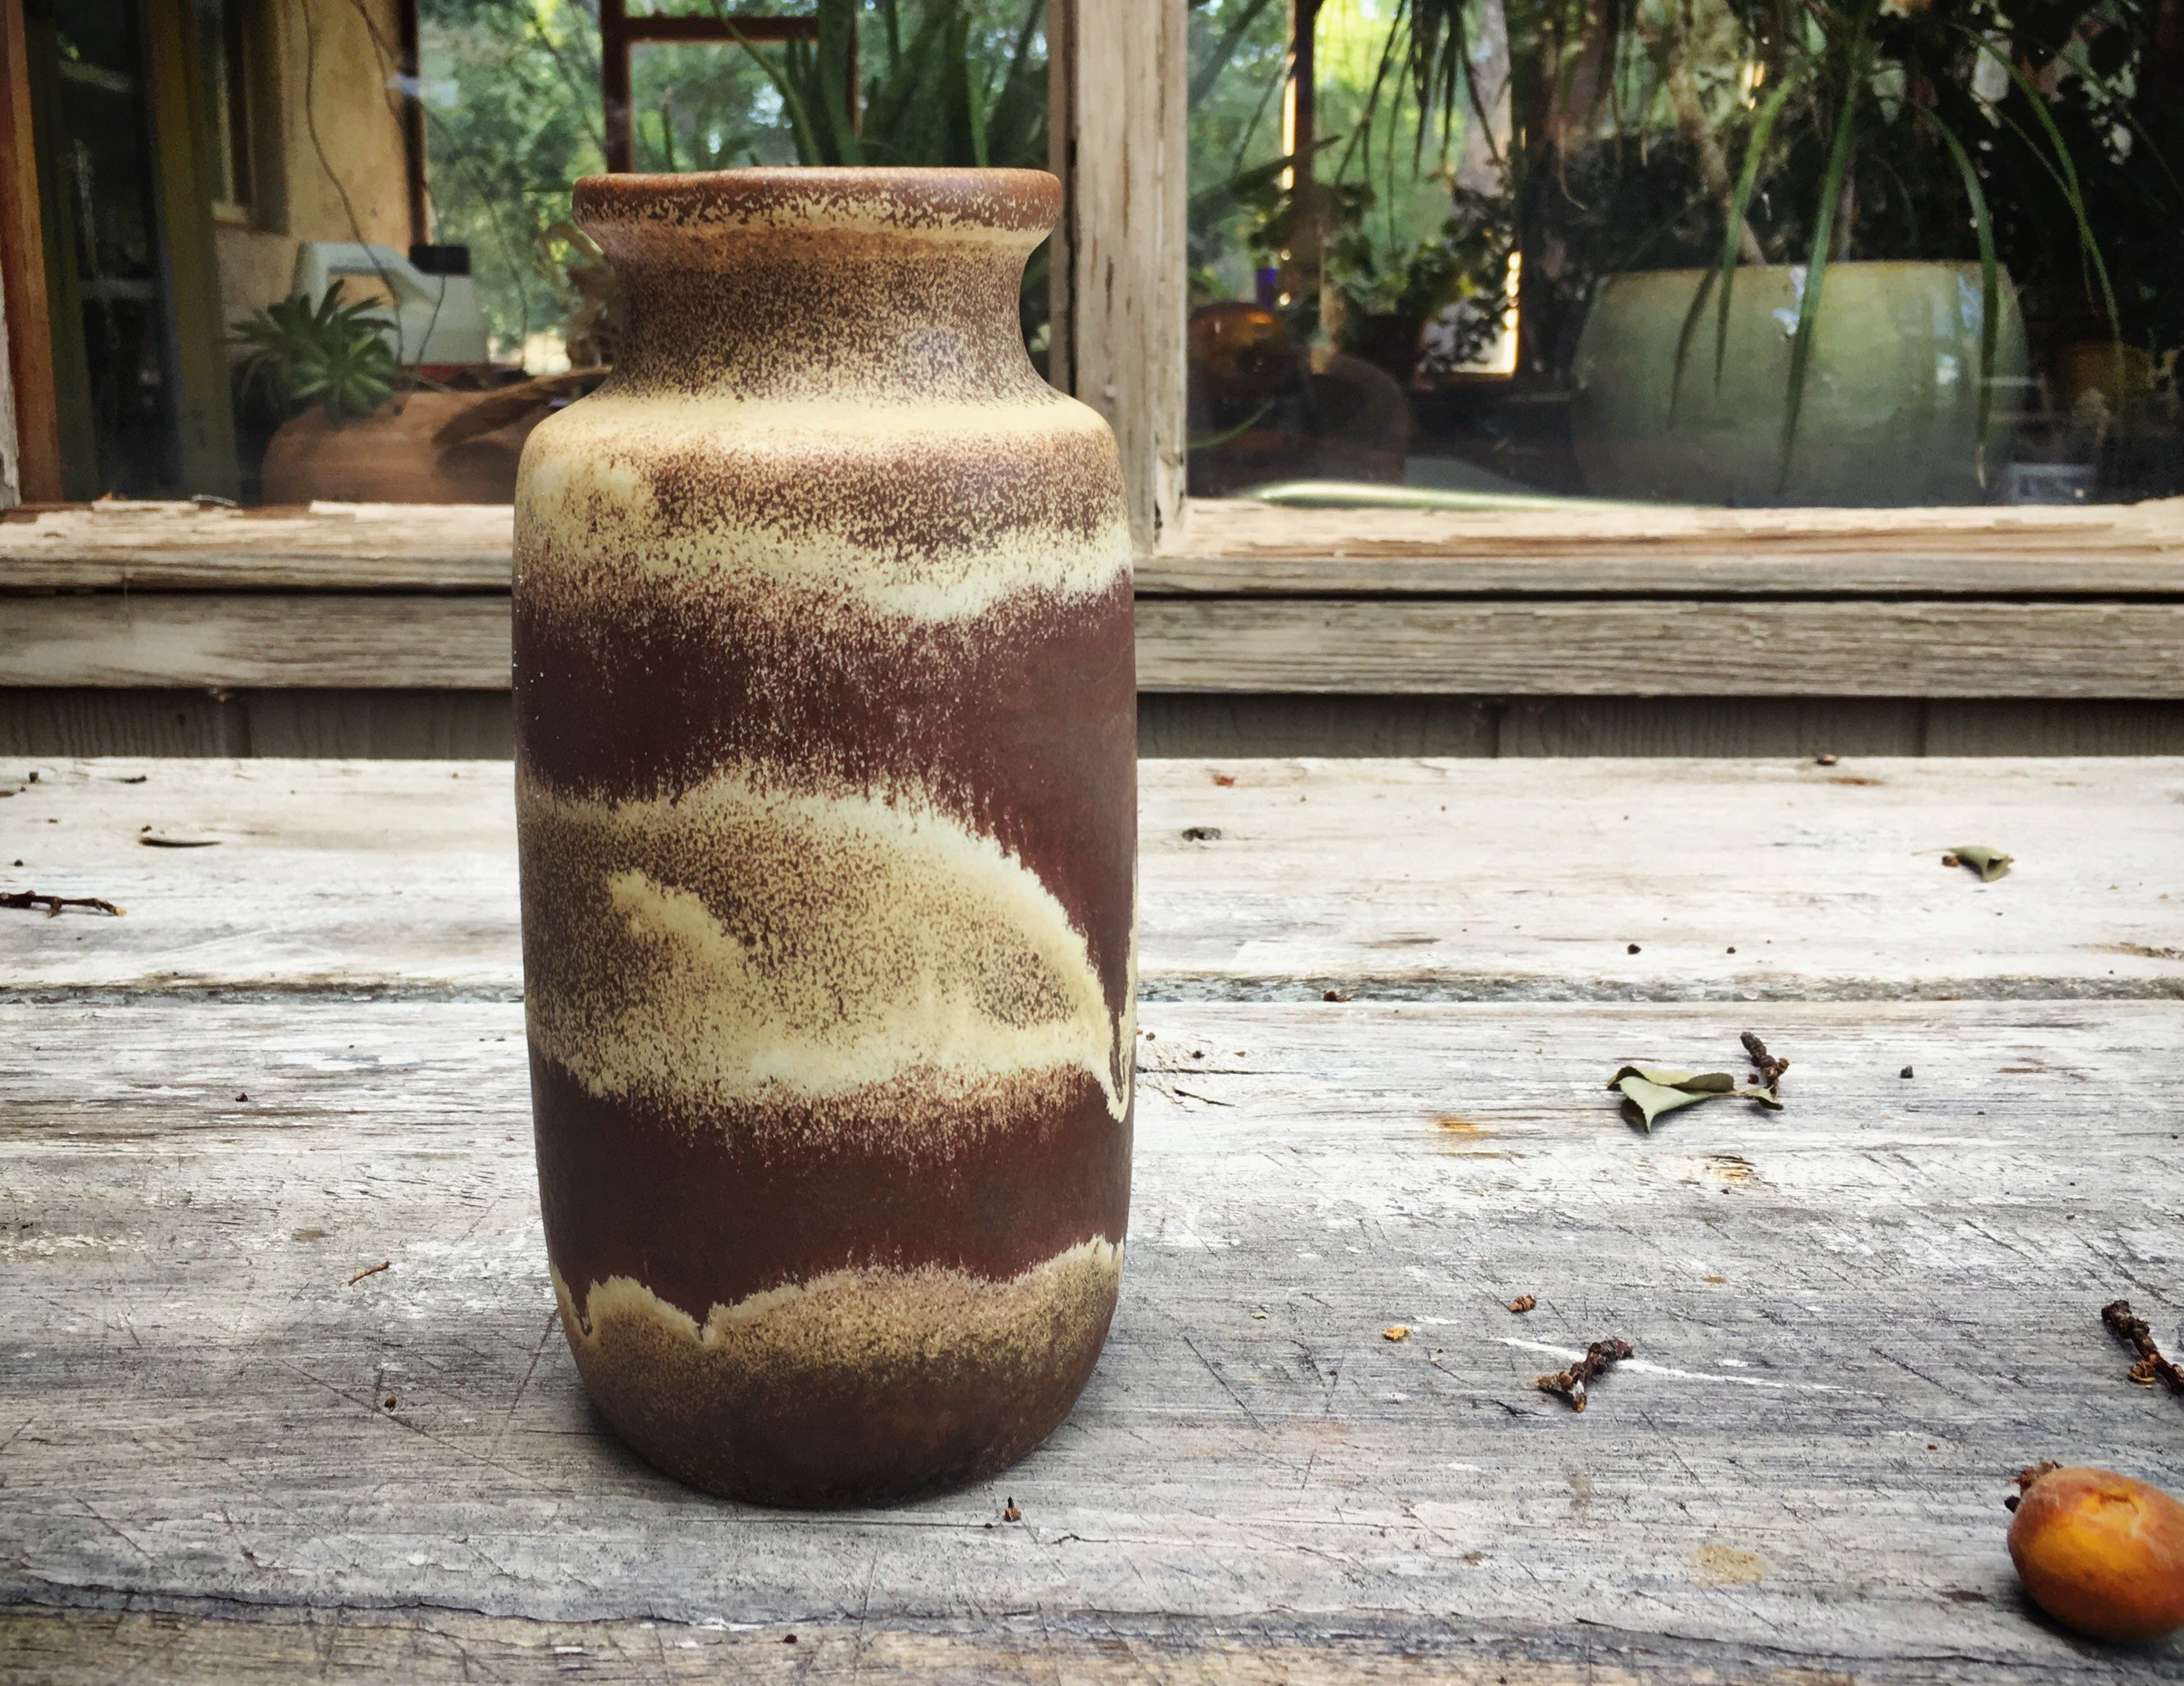 vase made in germany of mid century pottery west germany vase 213 20 scheurich keramik vase intended for mid century pottery west germany vase 213 20 scheurich keramik vase for centerpiece fat lava